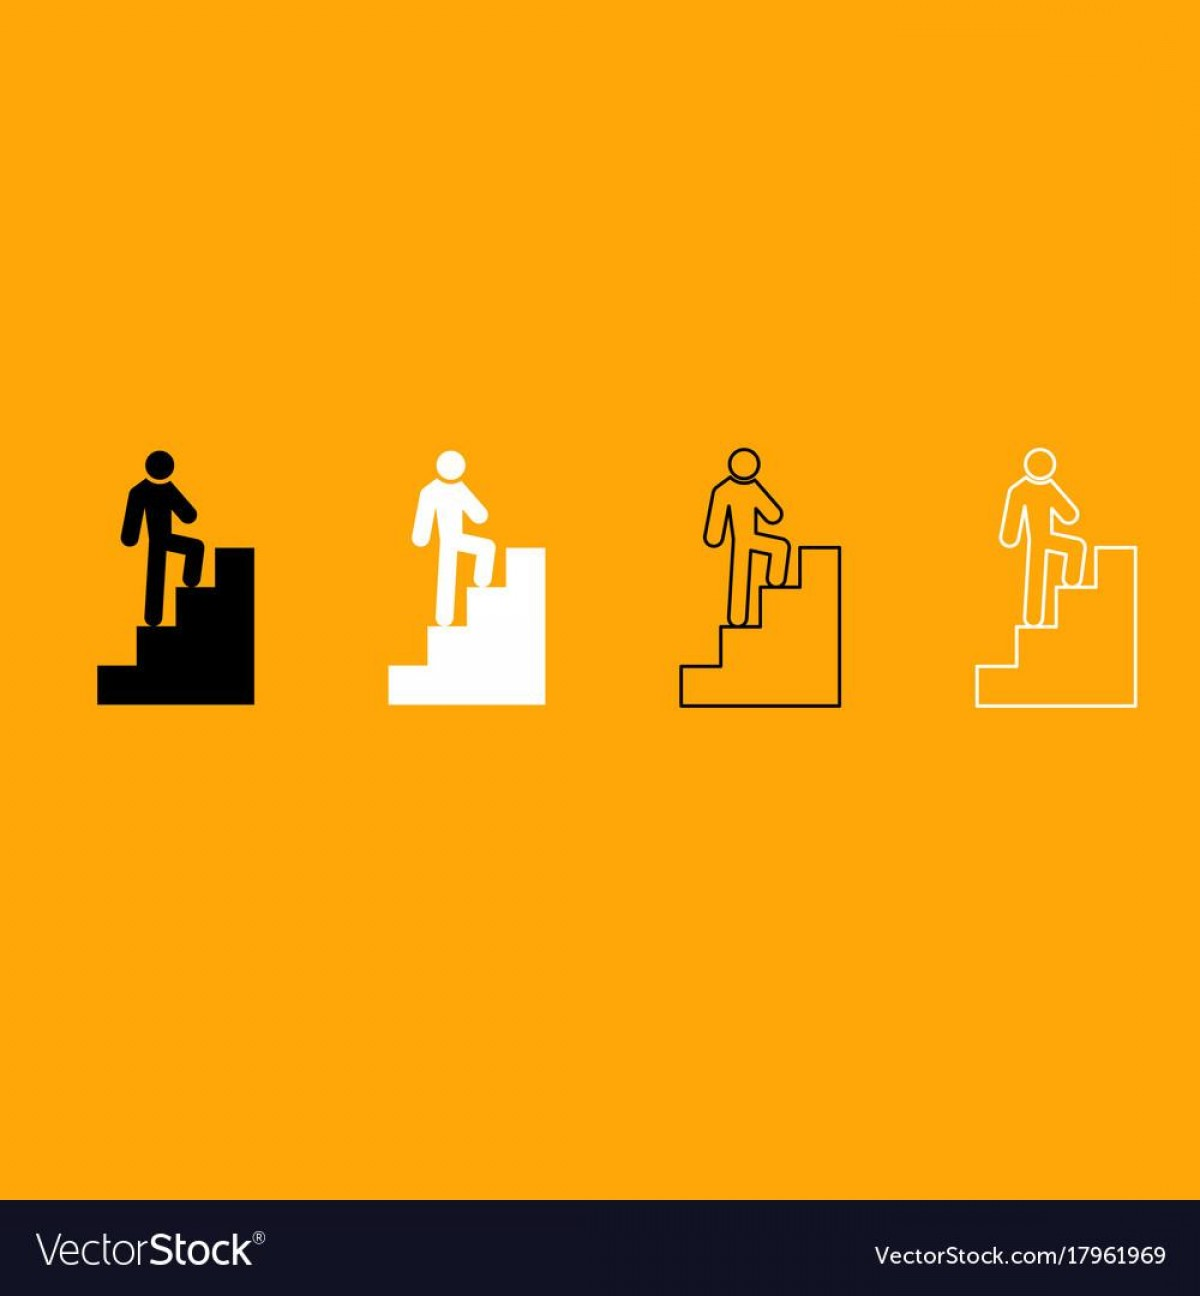 Stair Climb Vector: Best Man Climbing Stairs Black And White Set Icon Vector Design